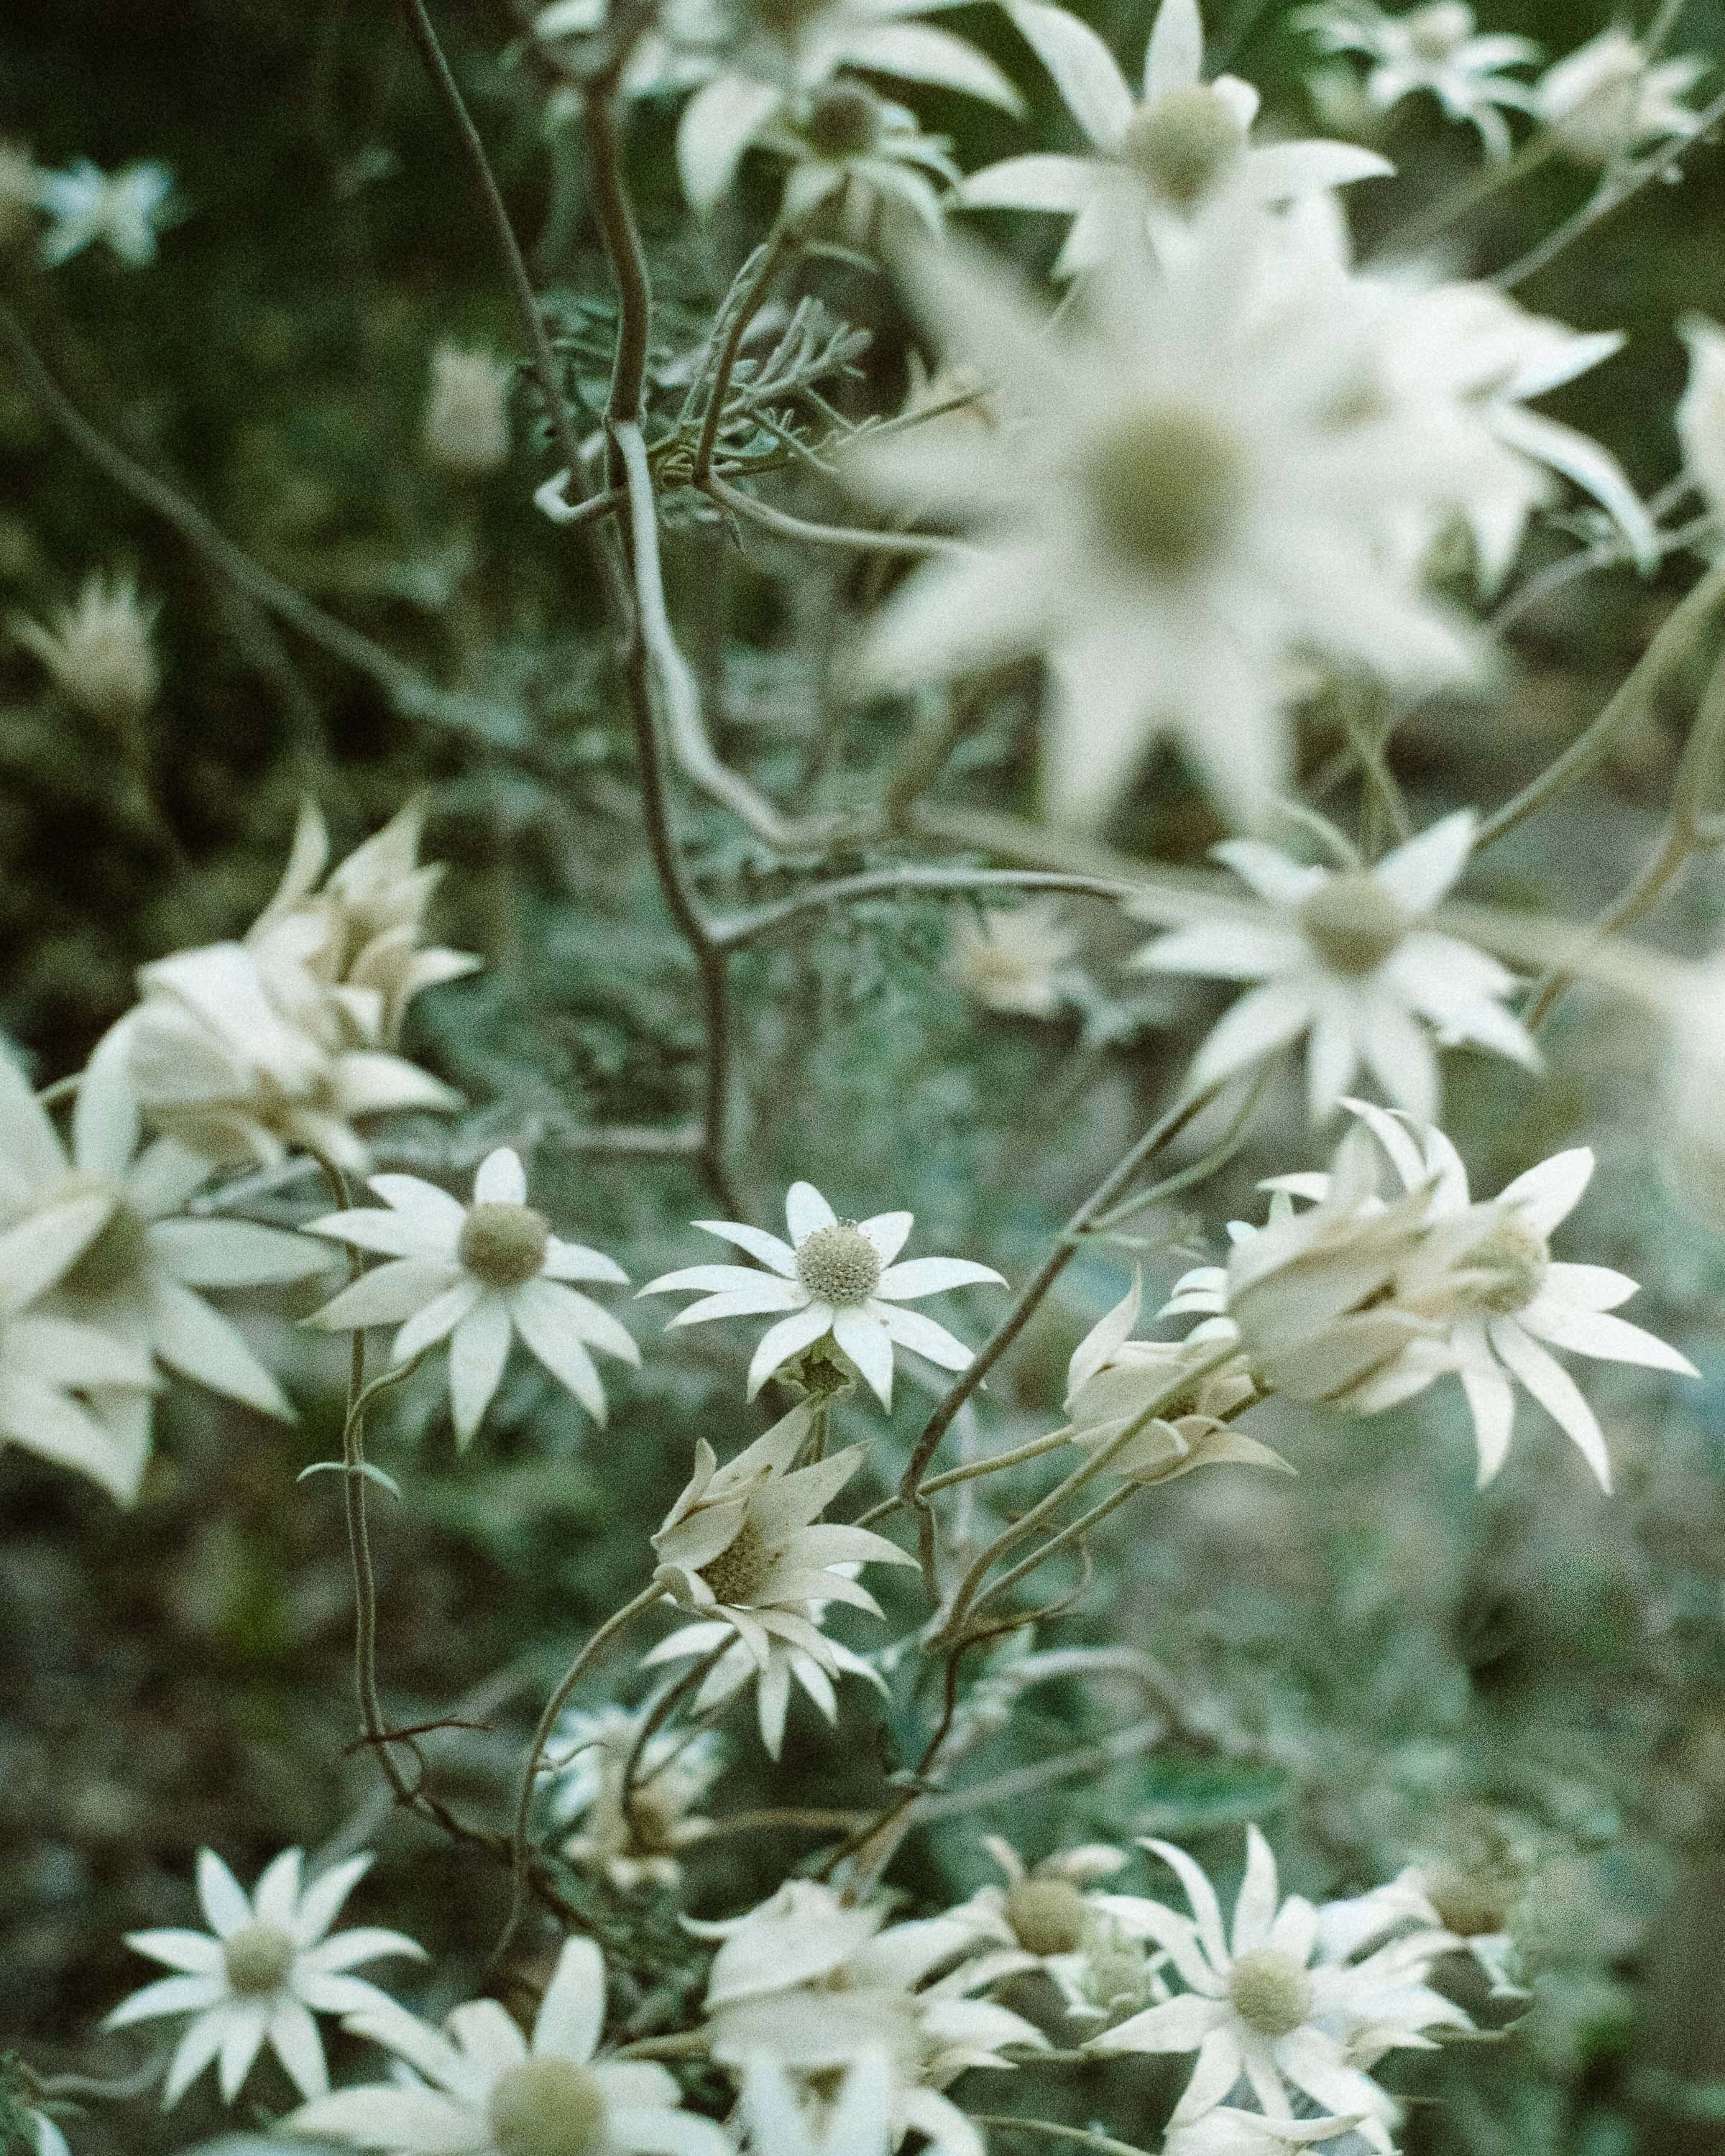 The native Australian flannel flower. Photo: Noah Strammbach